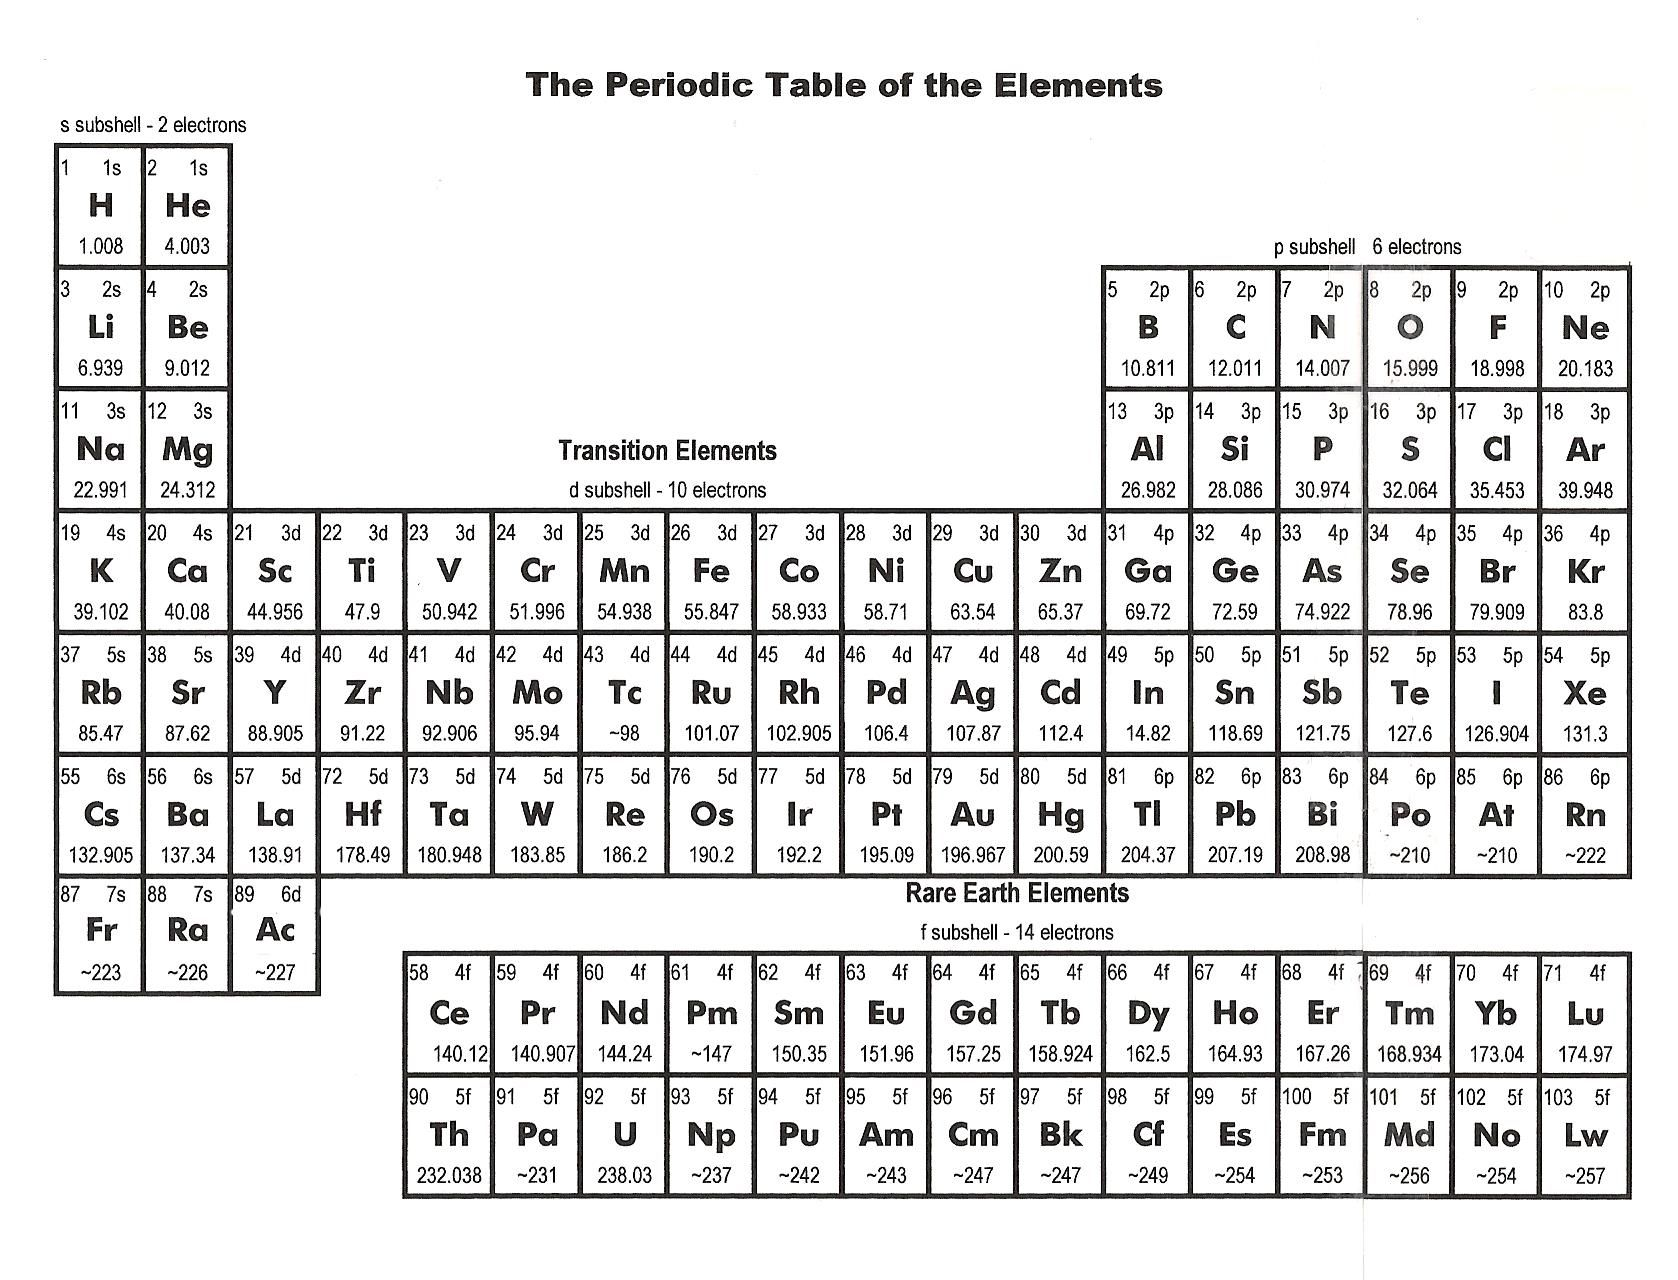 Complete Periodic Table With Cations And Anions